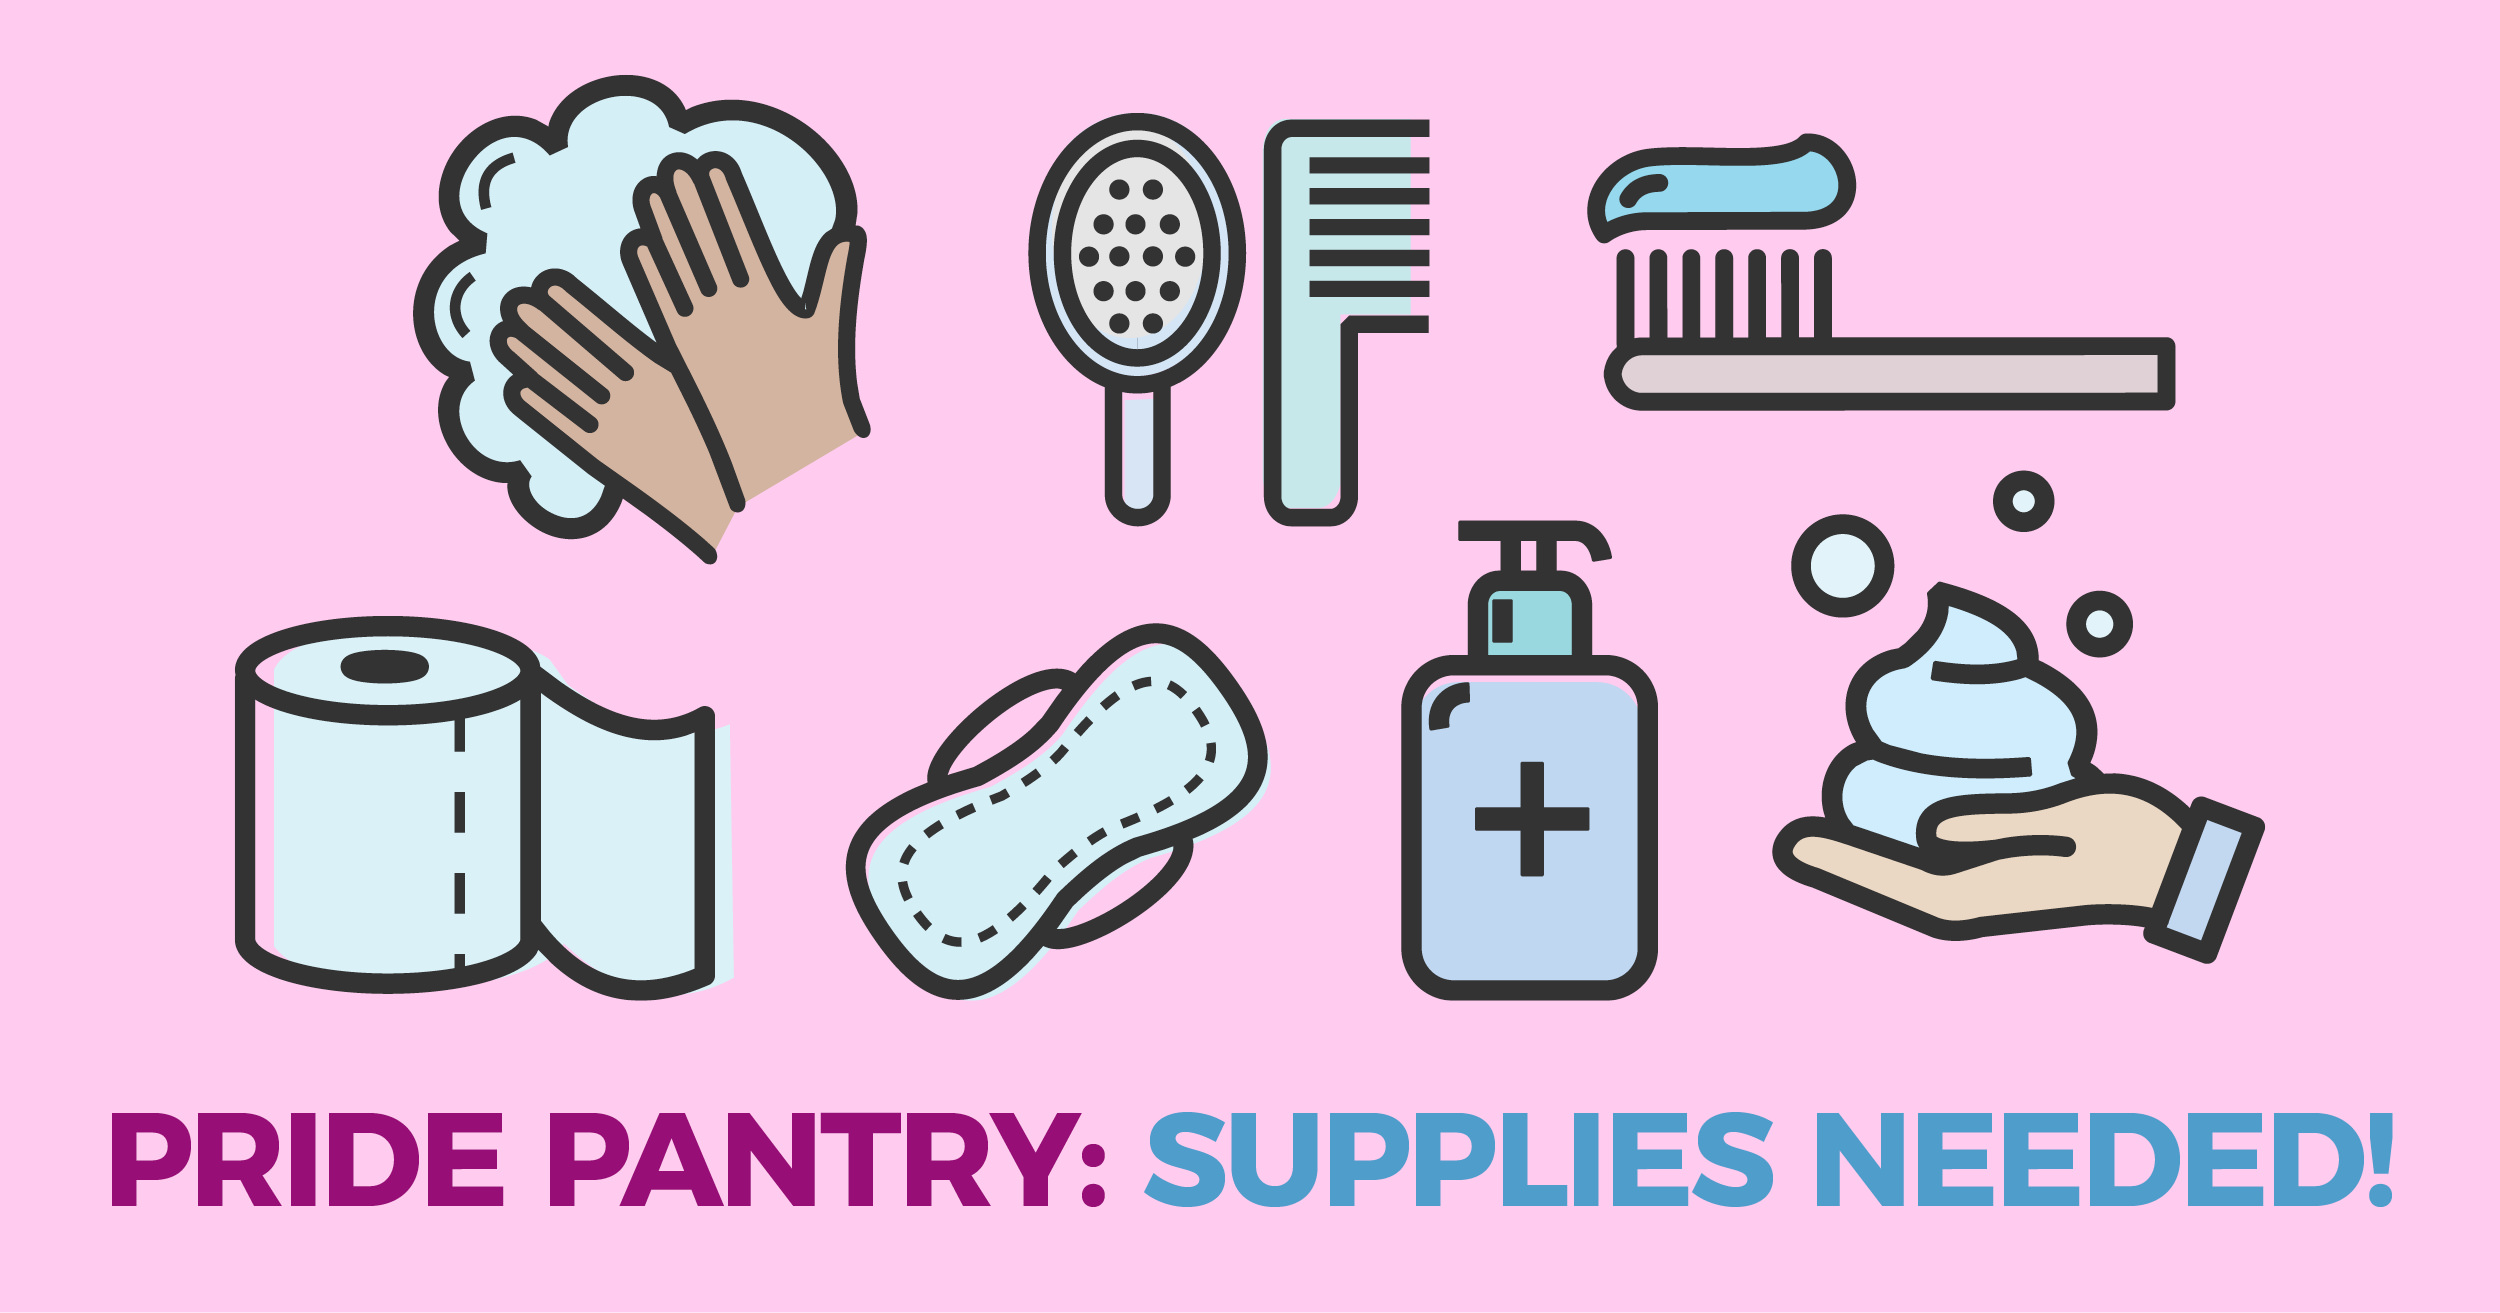 Supplies Needed for Brooklyn Community Pride Center Pride Pantry!